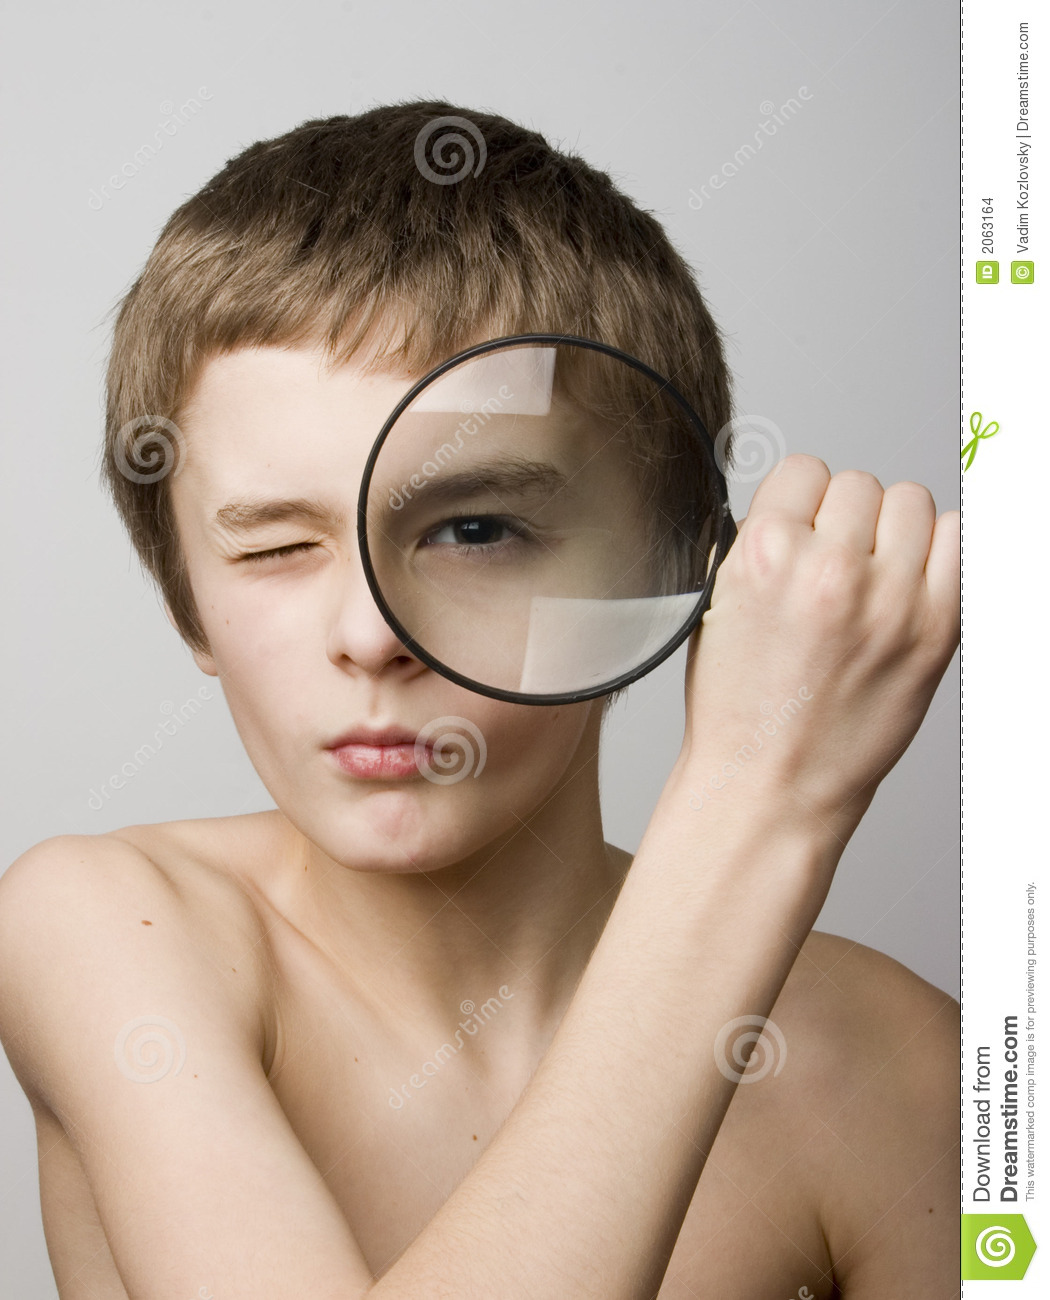 Boy Looking Through The Lens Stock Images - Image: 2063164